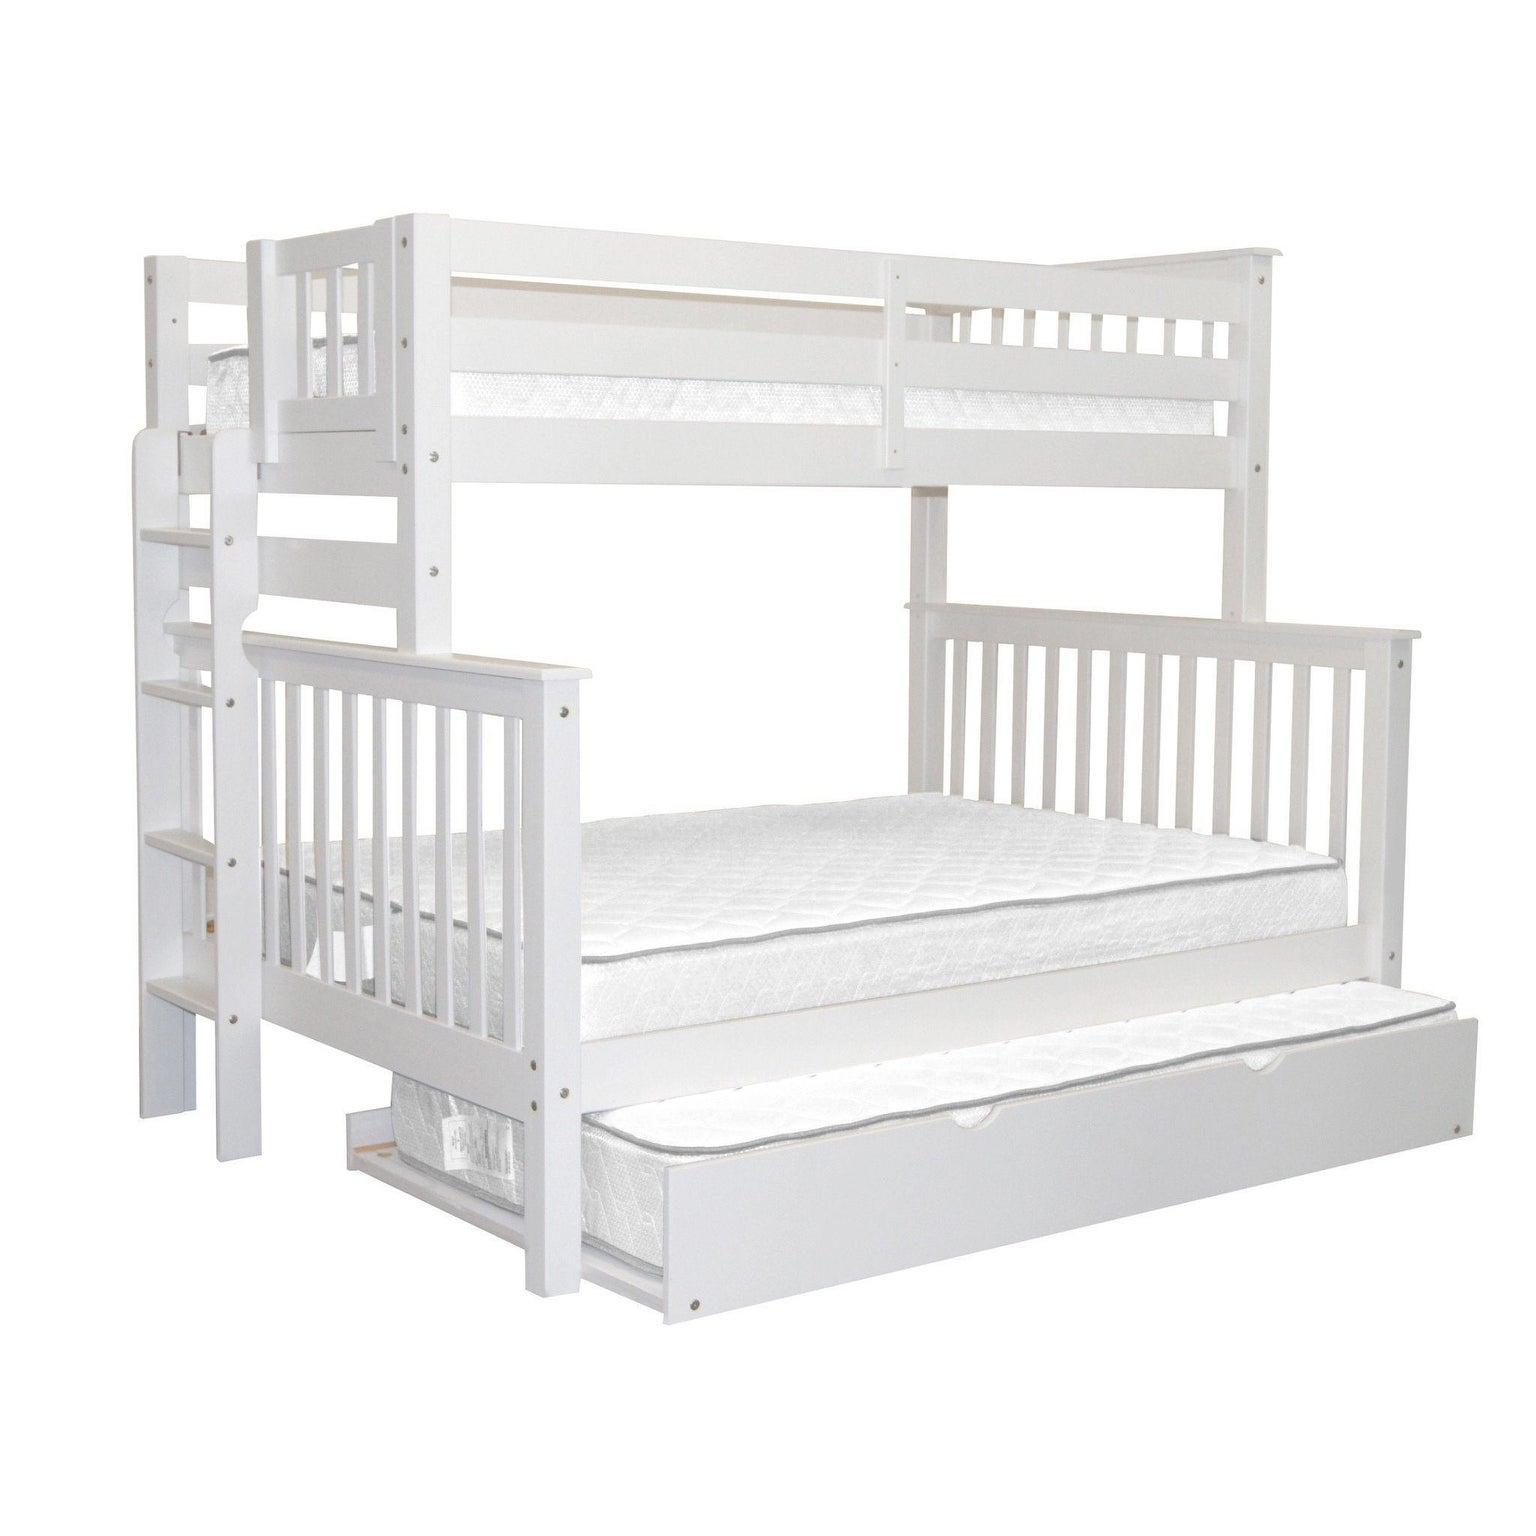 Bedz King Bunk Beds Twin Over Full Mission Style With End Ladder And A Twin Trundle White Overstock 24241091